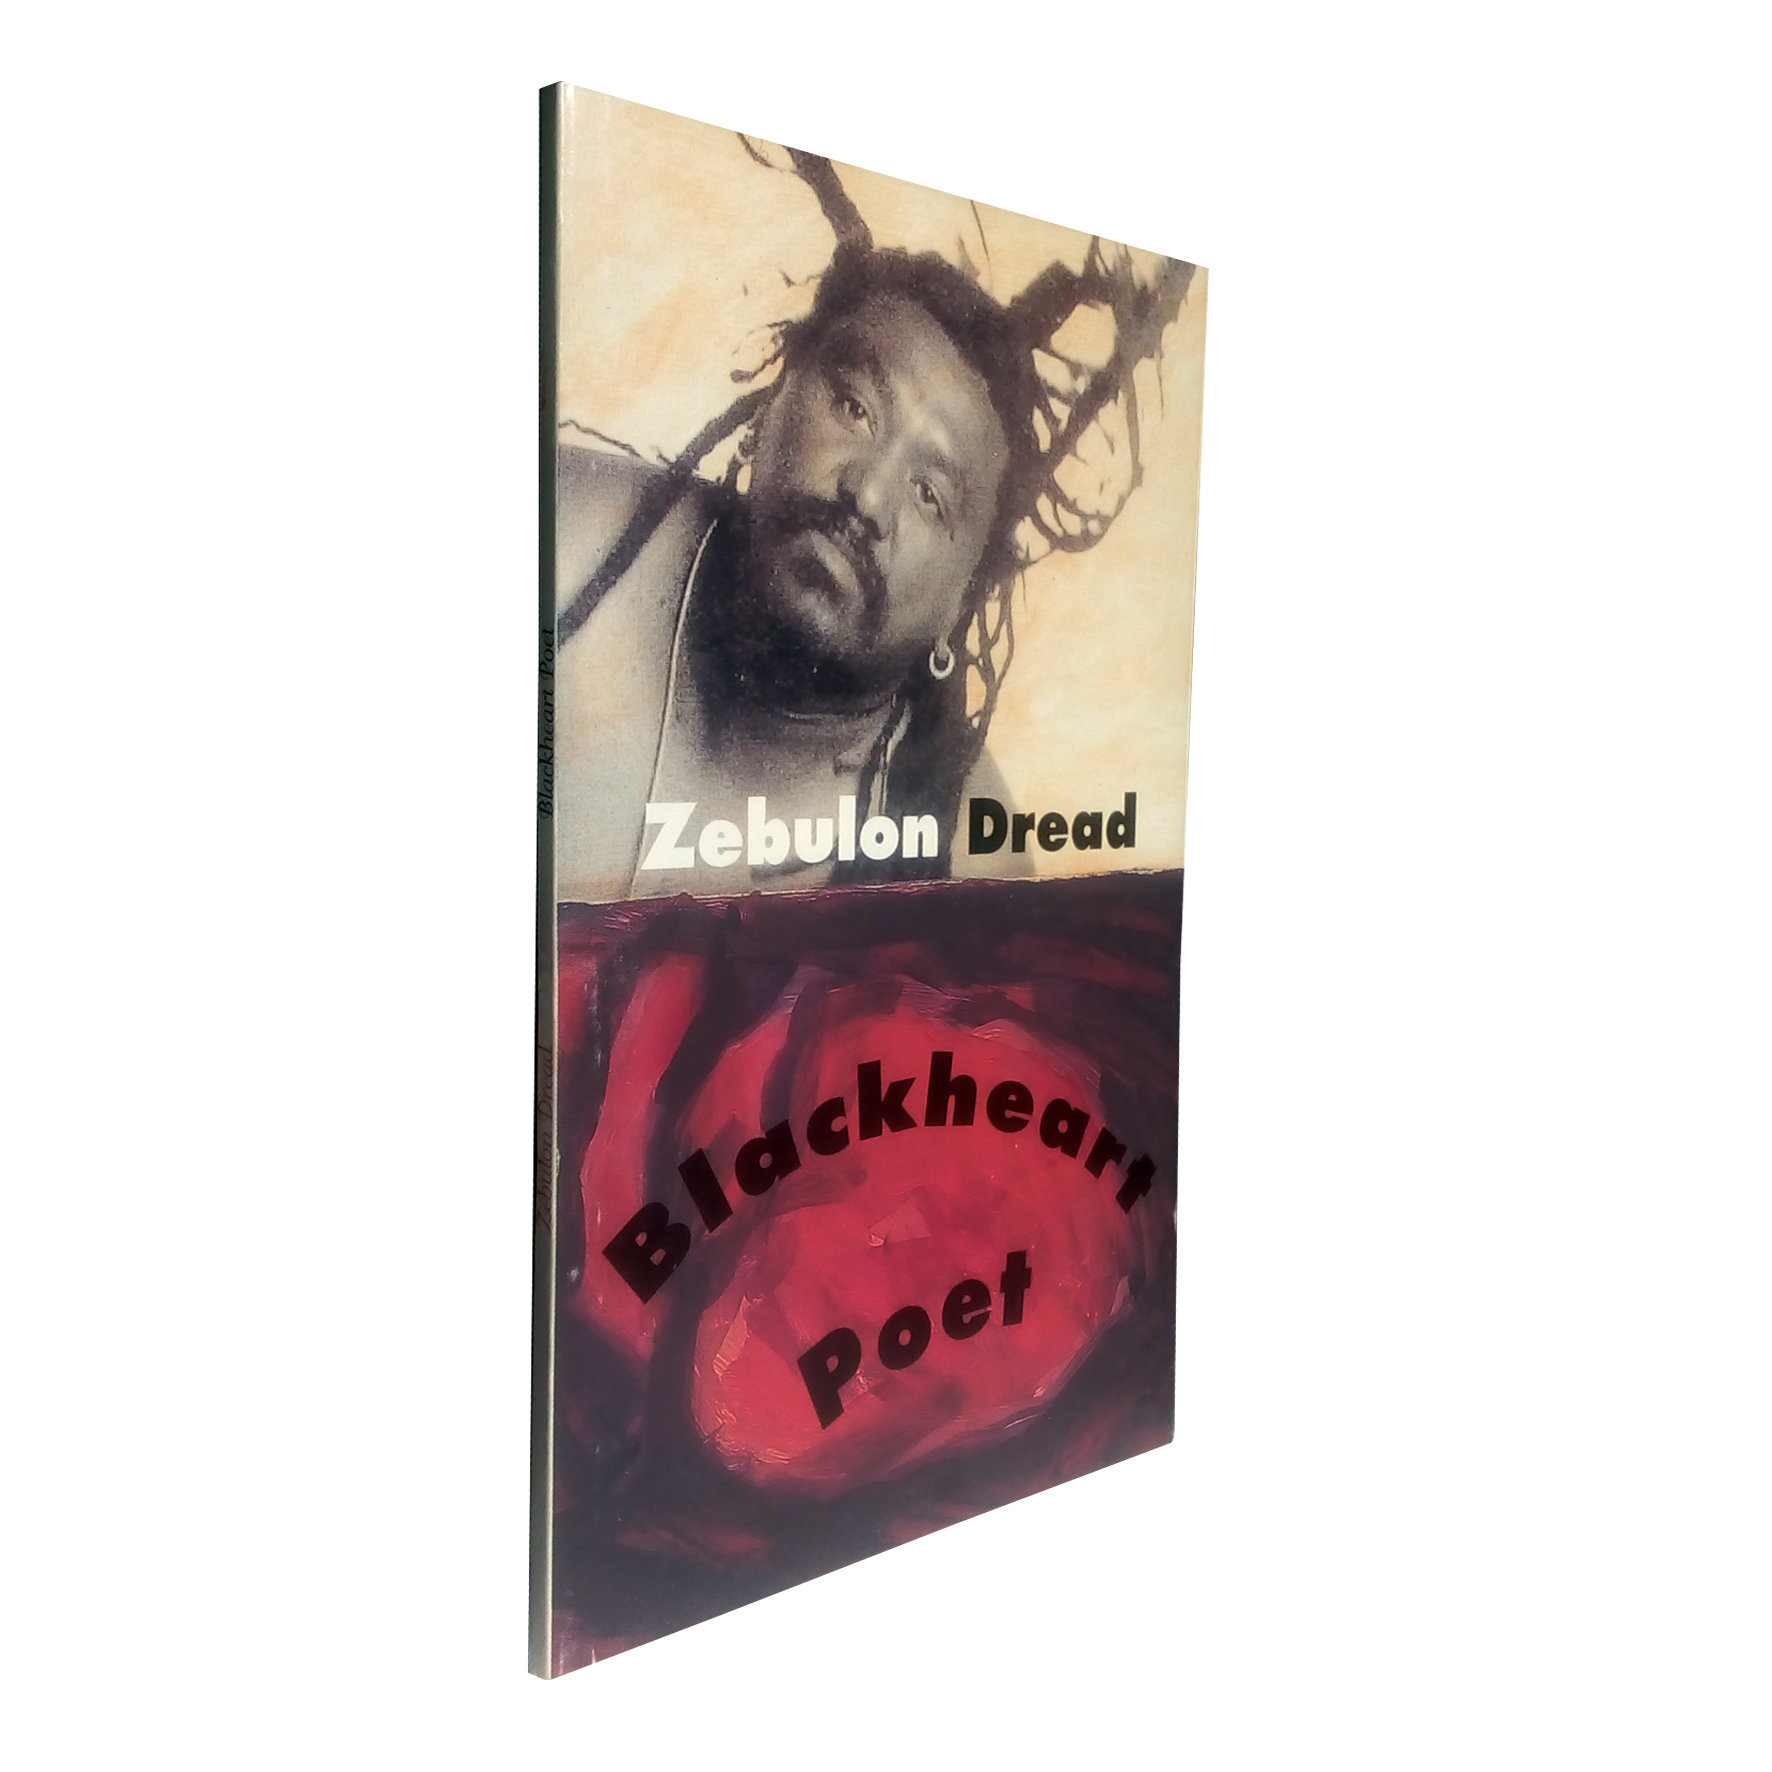 Black Heart Poet by Zebulon Dread (Zebulon Dread, 1999) CIR13